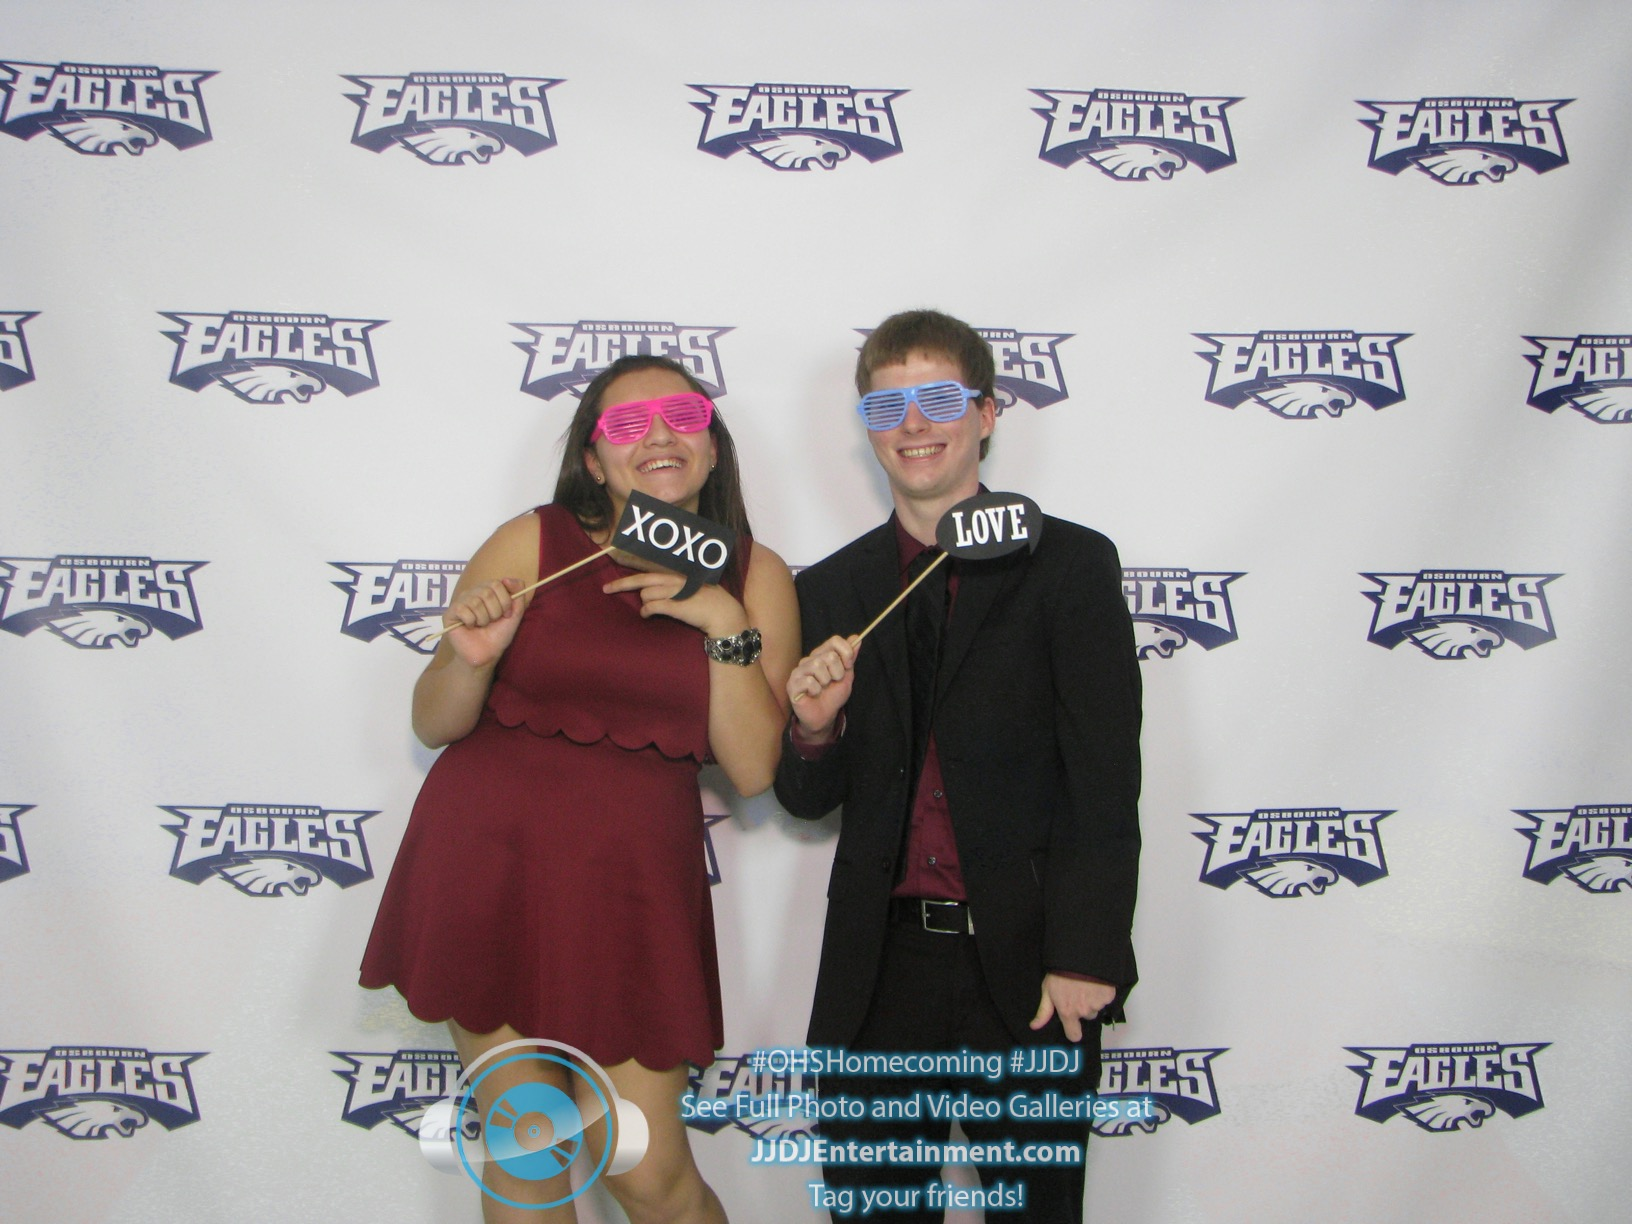 OHS 2014 Homecoming Photobooth -51